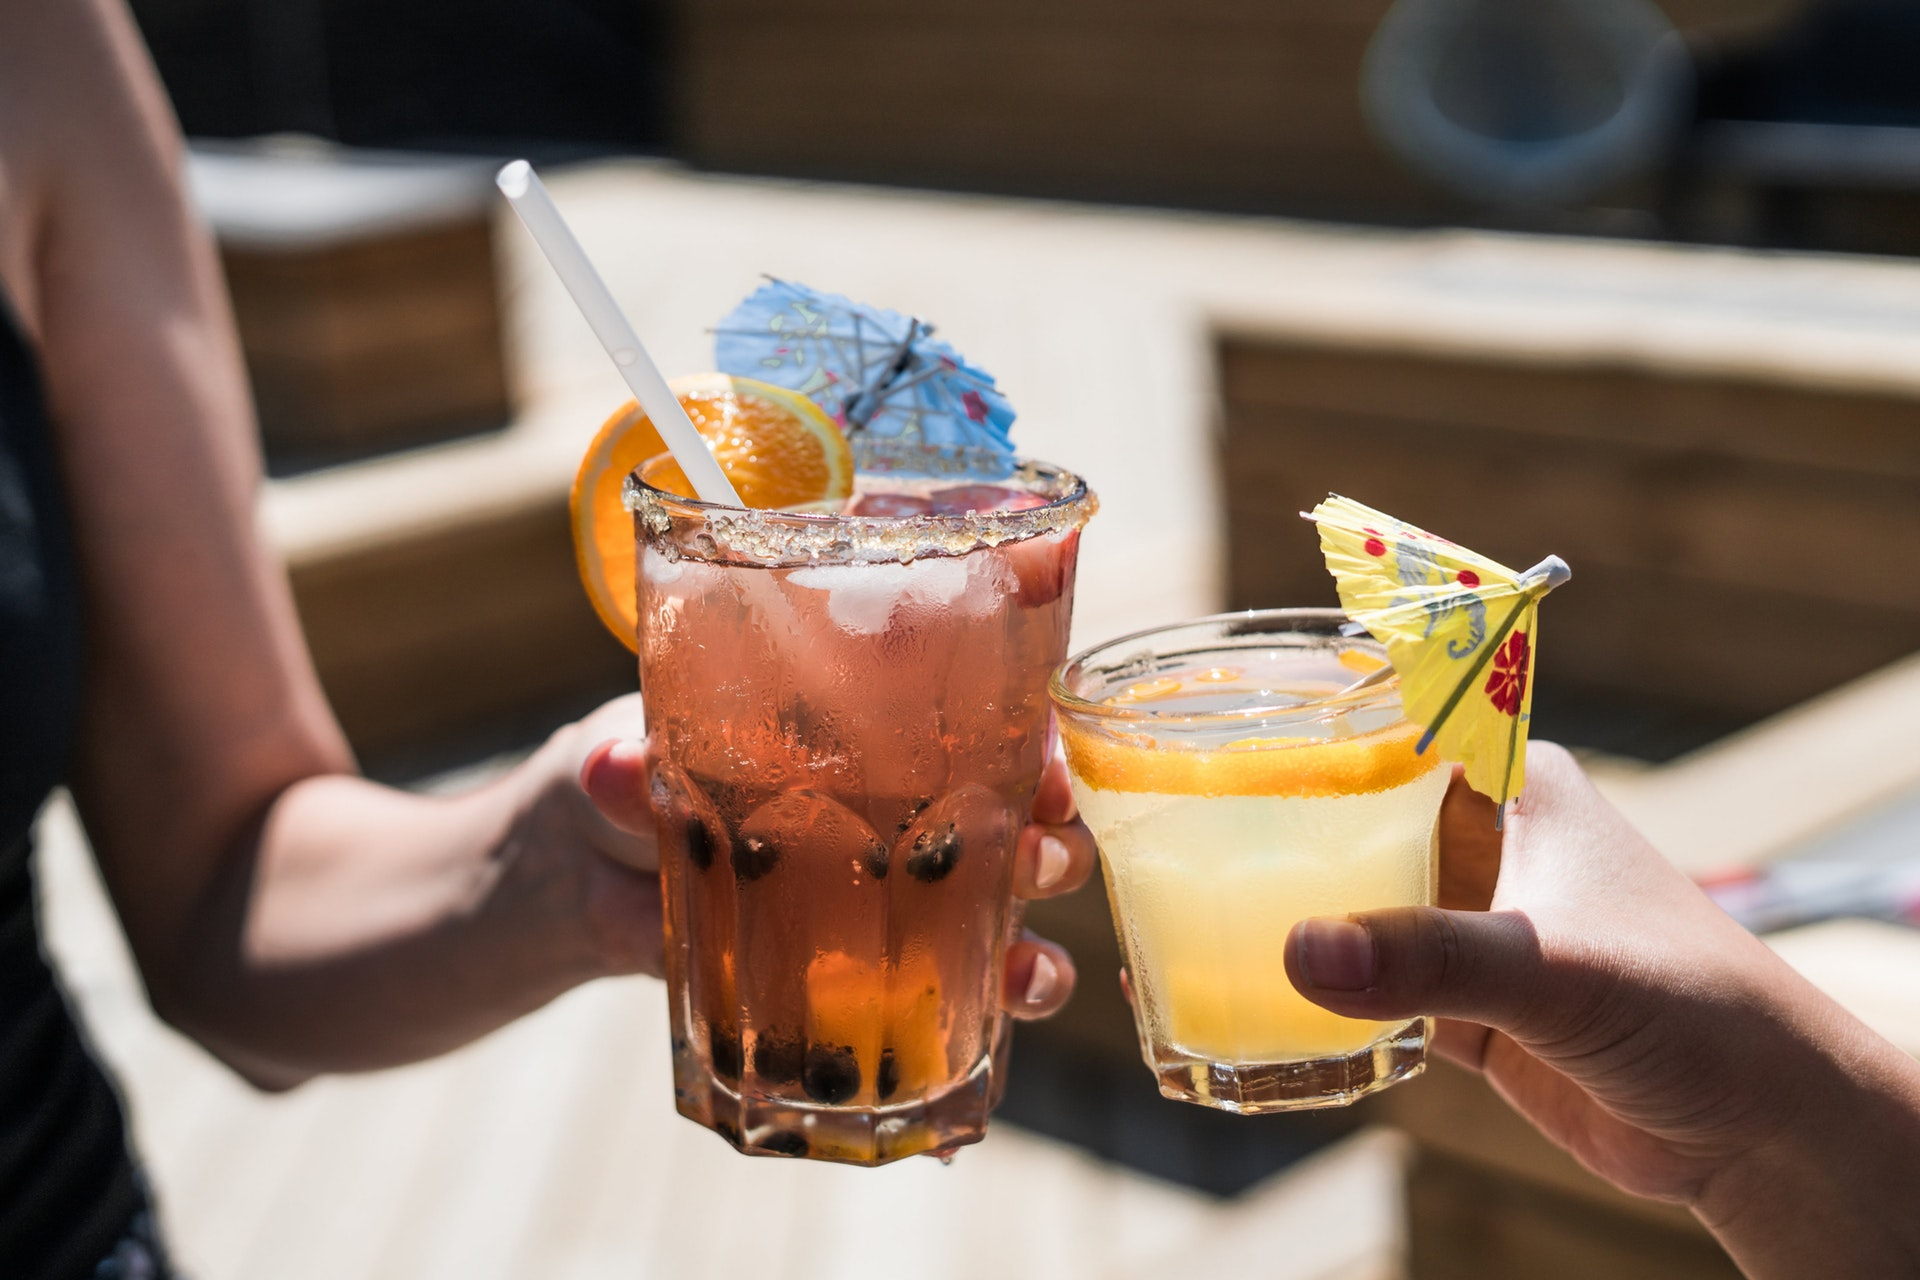 Alcoholic cocktai s served in backyard of open house